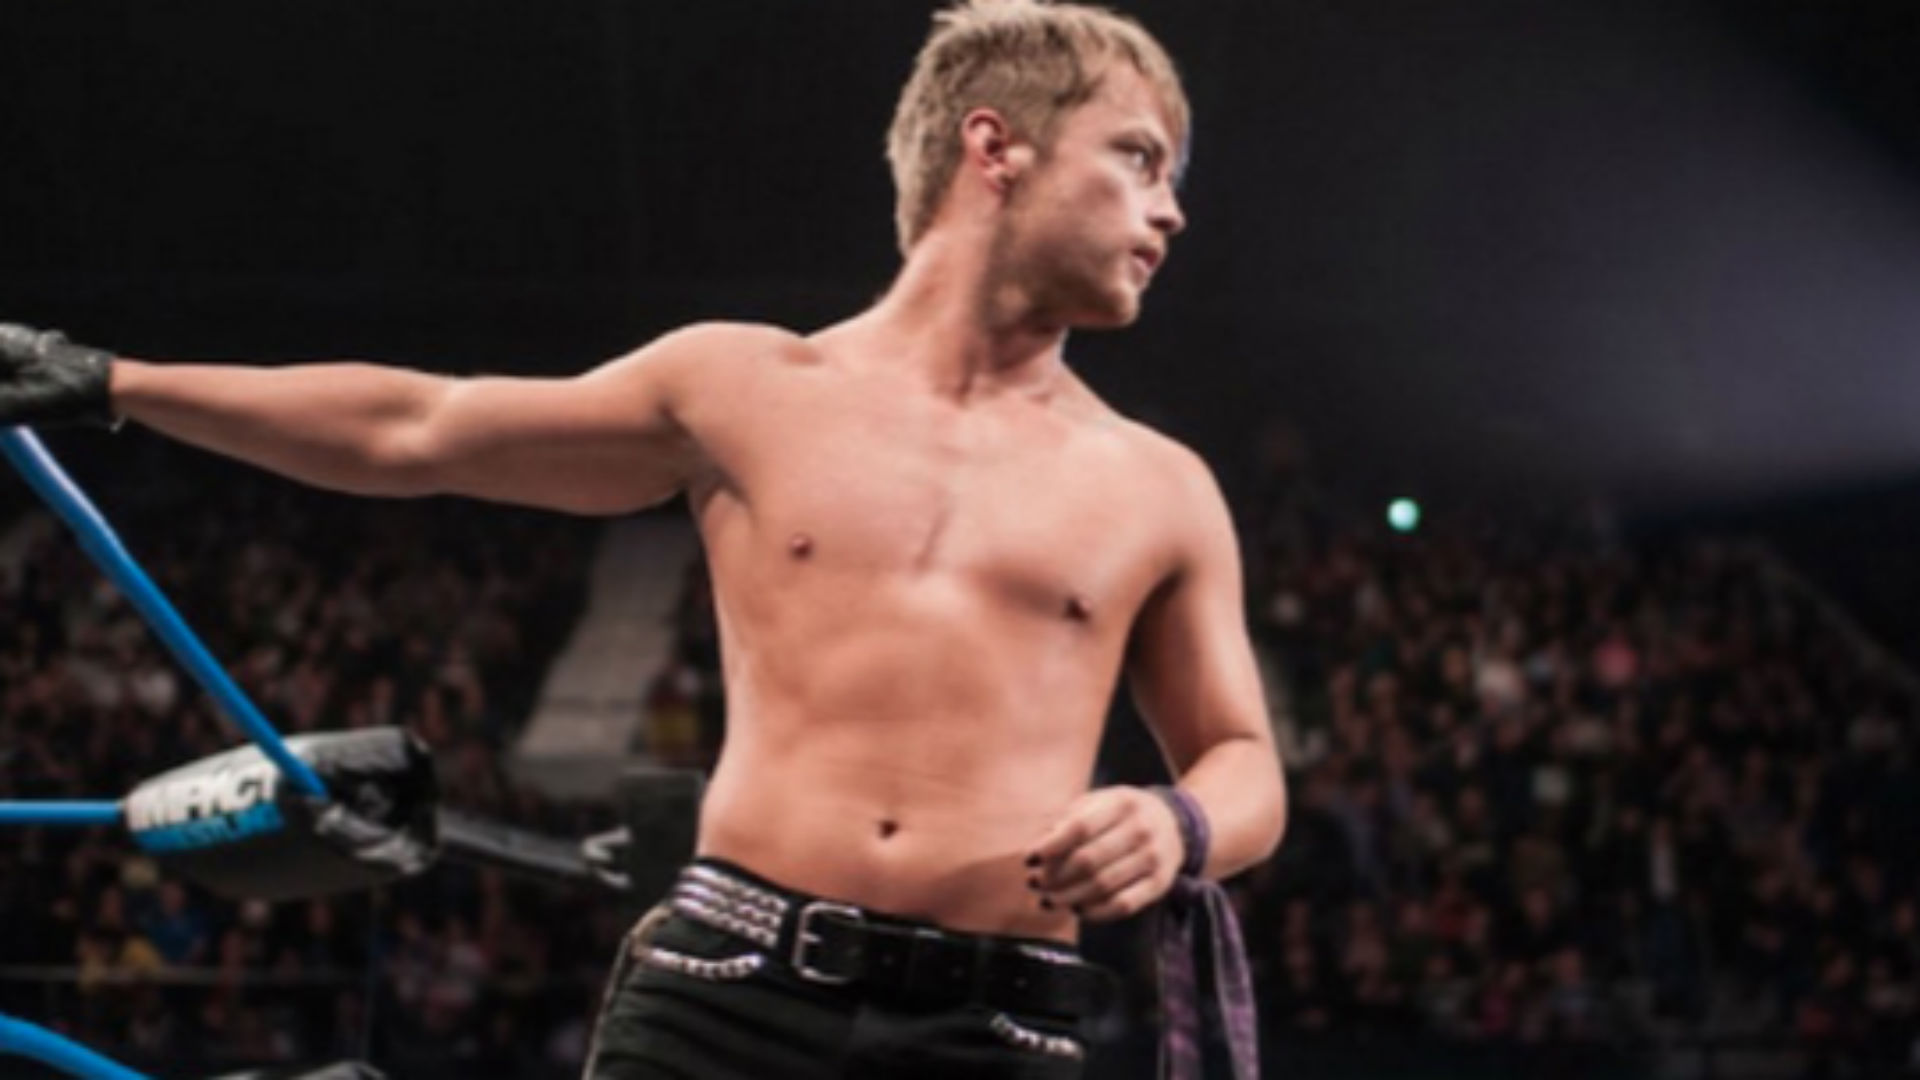 rockstar-spud-tna-wrestling-031516-youtube-ftr